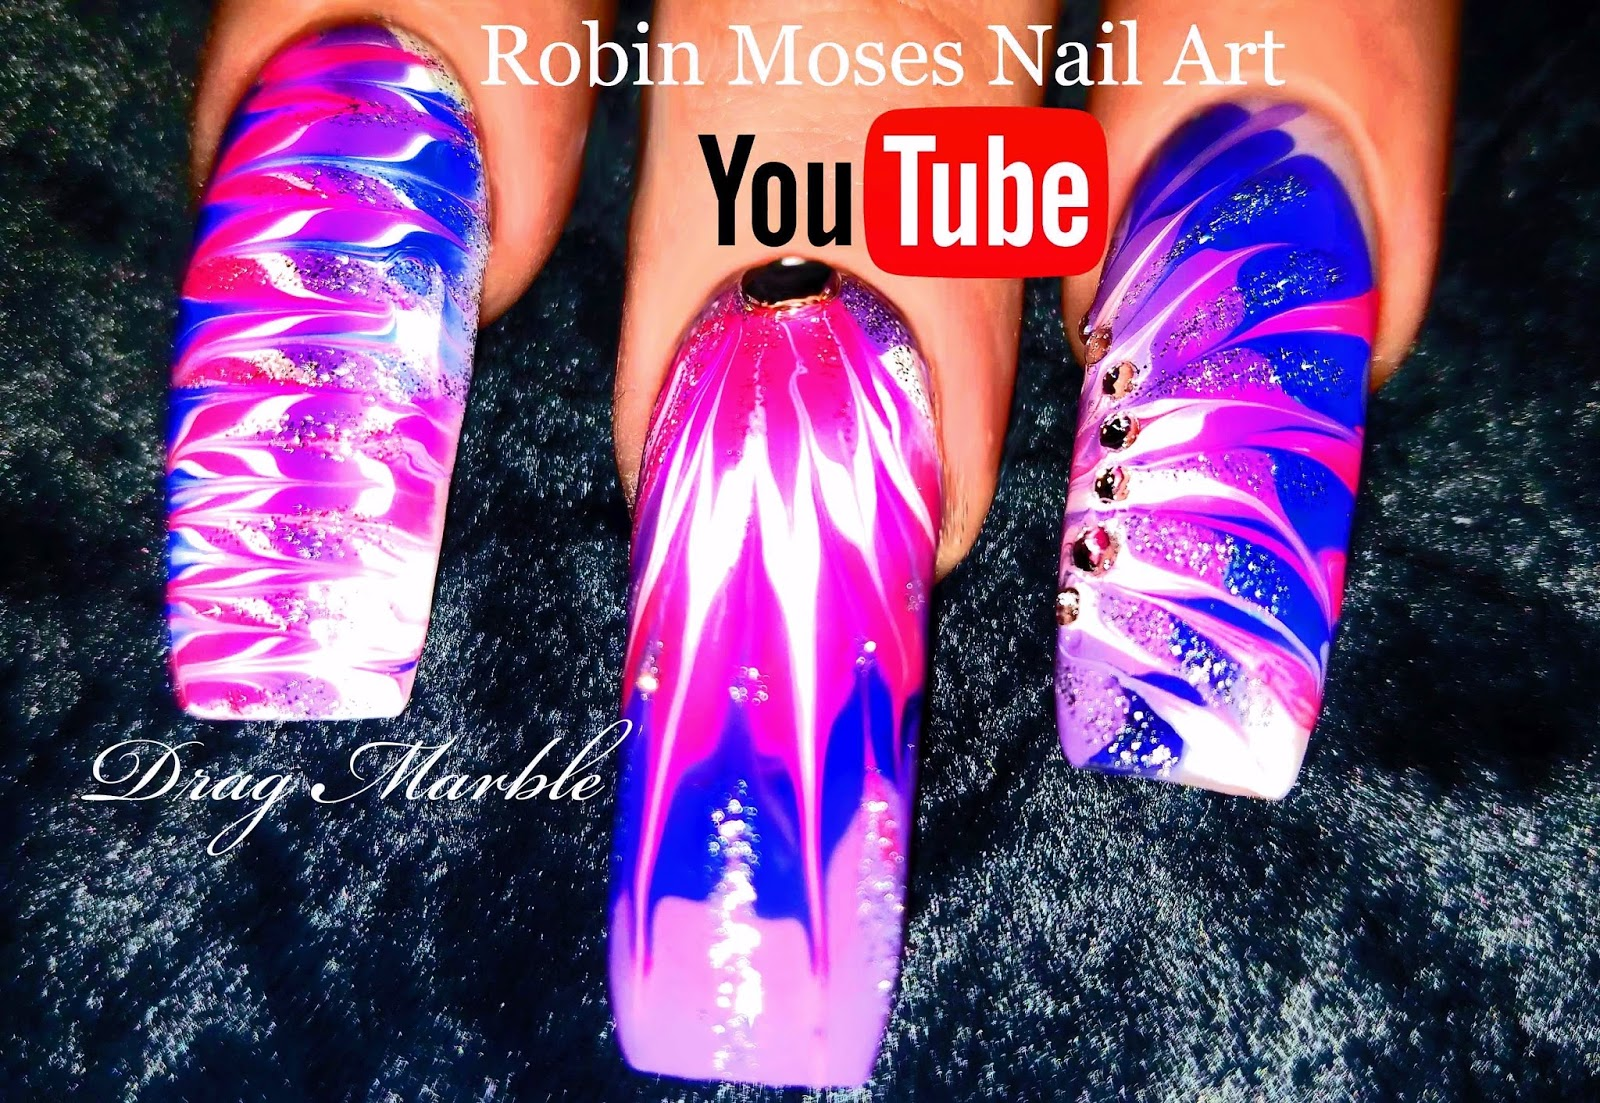 Nail Art by Robin Moses: Lavender and Pink No water Dry Drag Marble ...